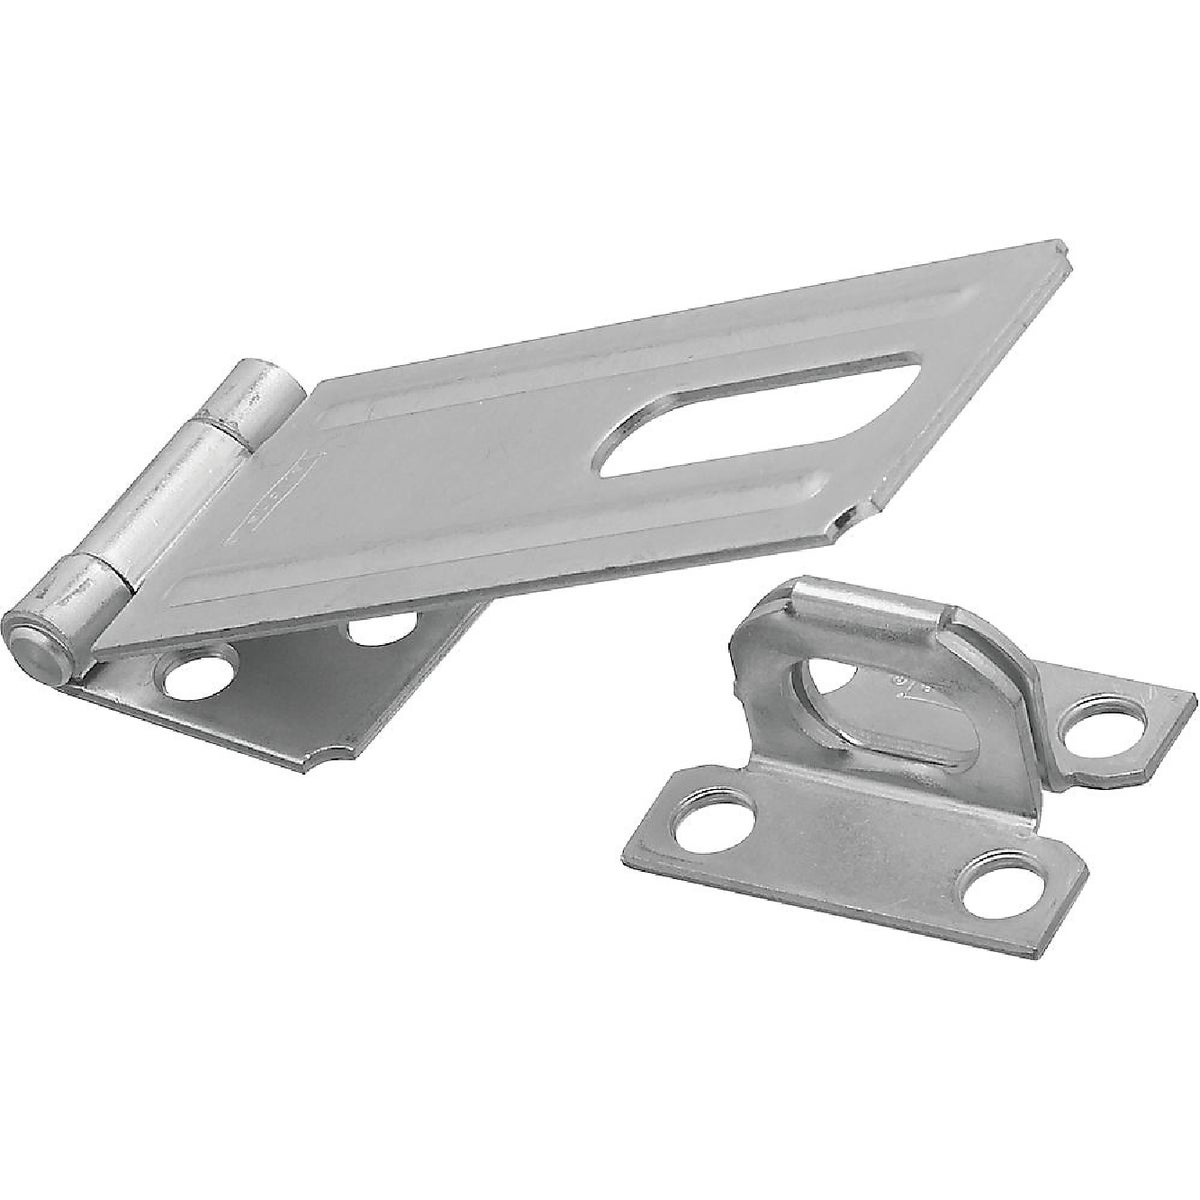 "4-1/2"" ZINC SAFETY HASP - N102384 by National Mfg Co"